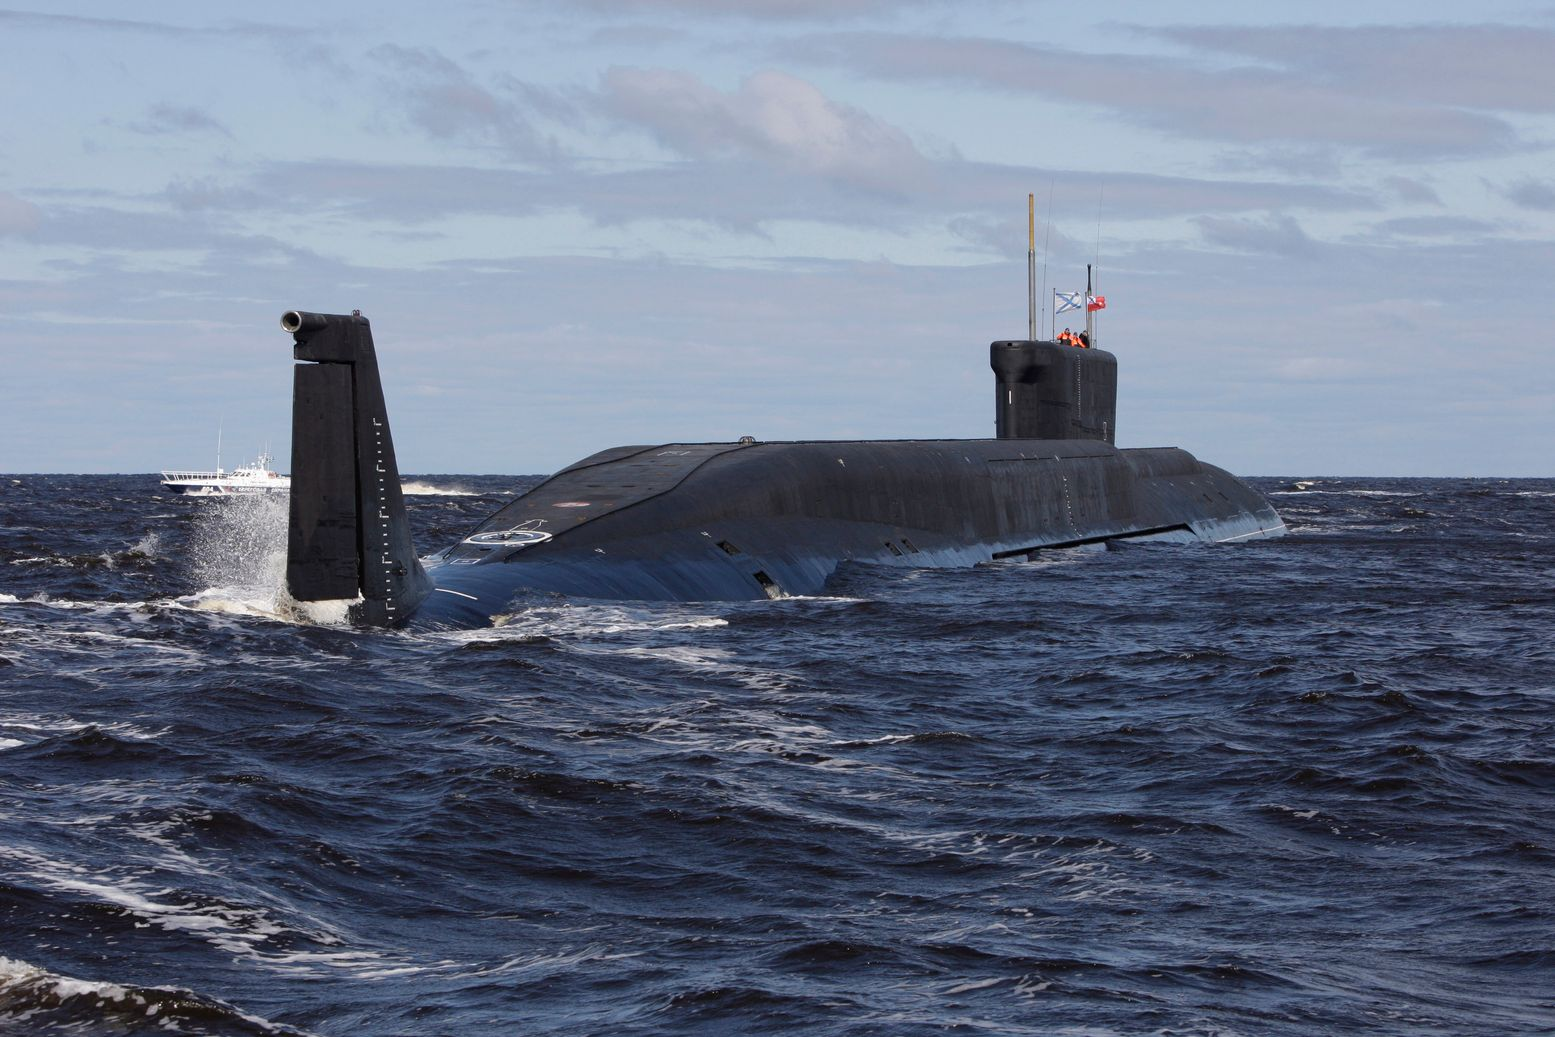 FACT: Russia's New Stealth Submarine Carries 72 Deadly Nuclear